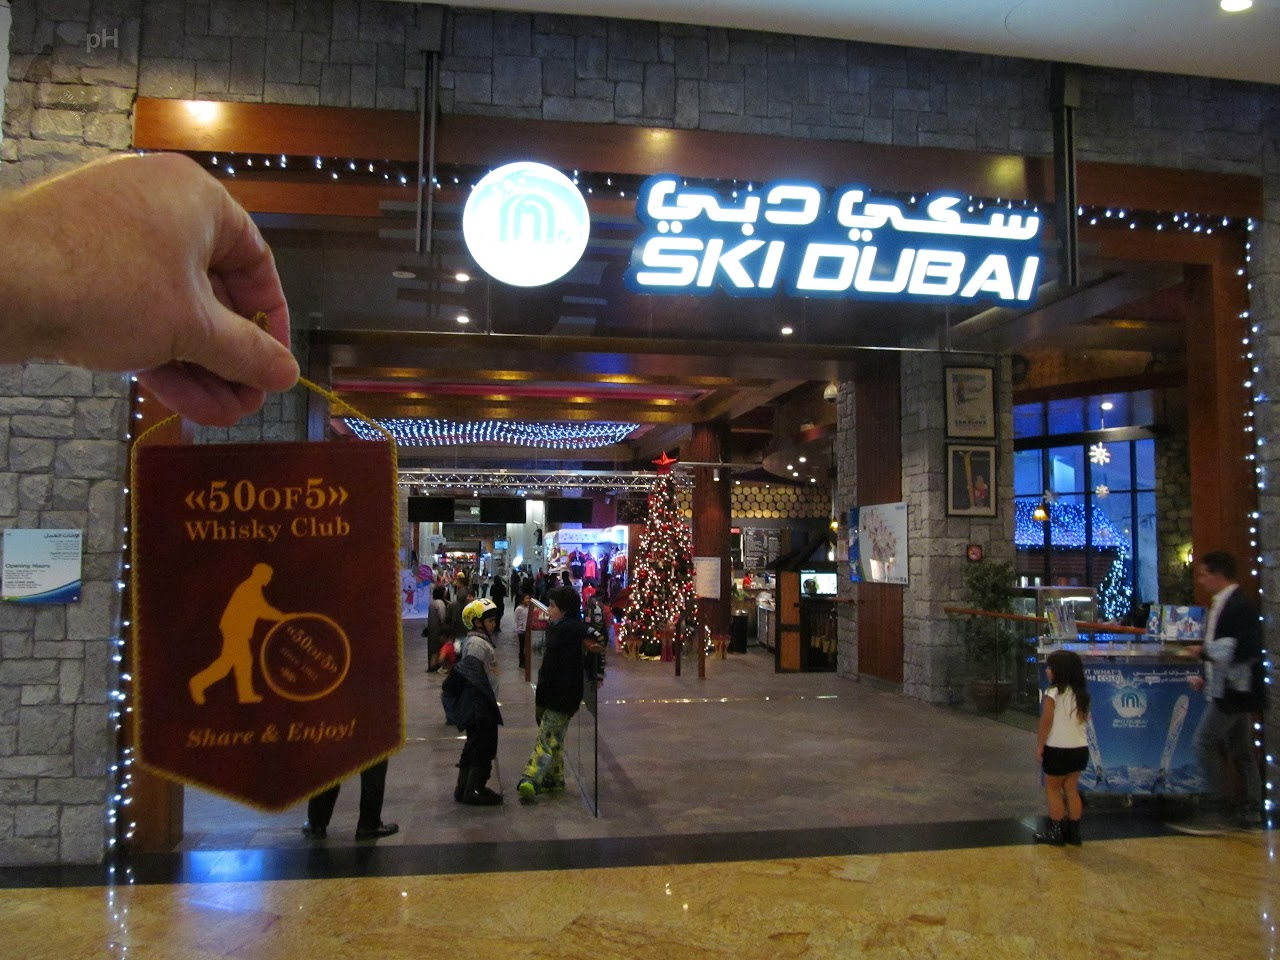 Mall of Emirates - Ski Dubai